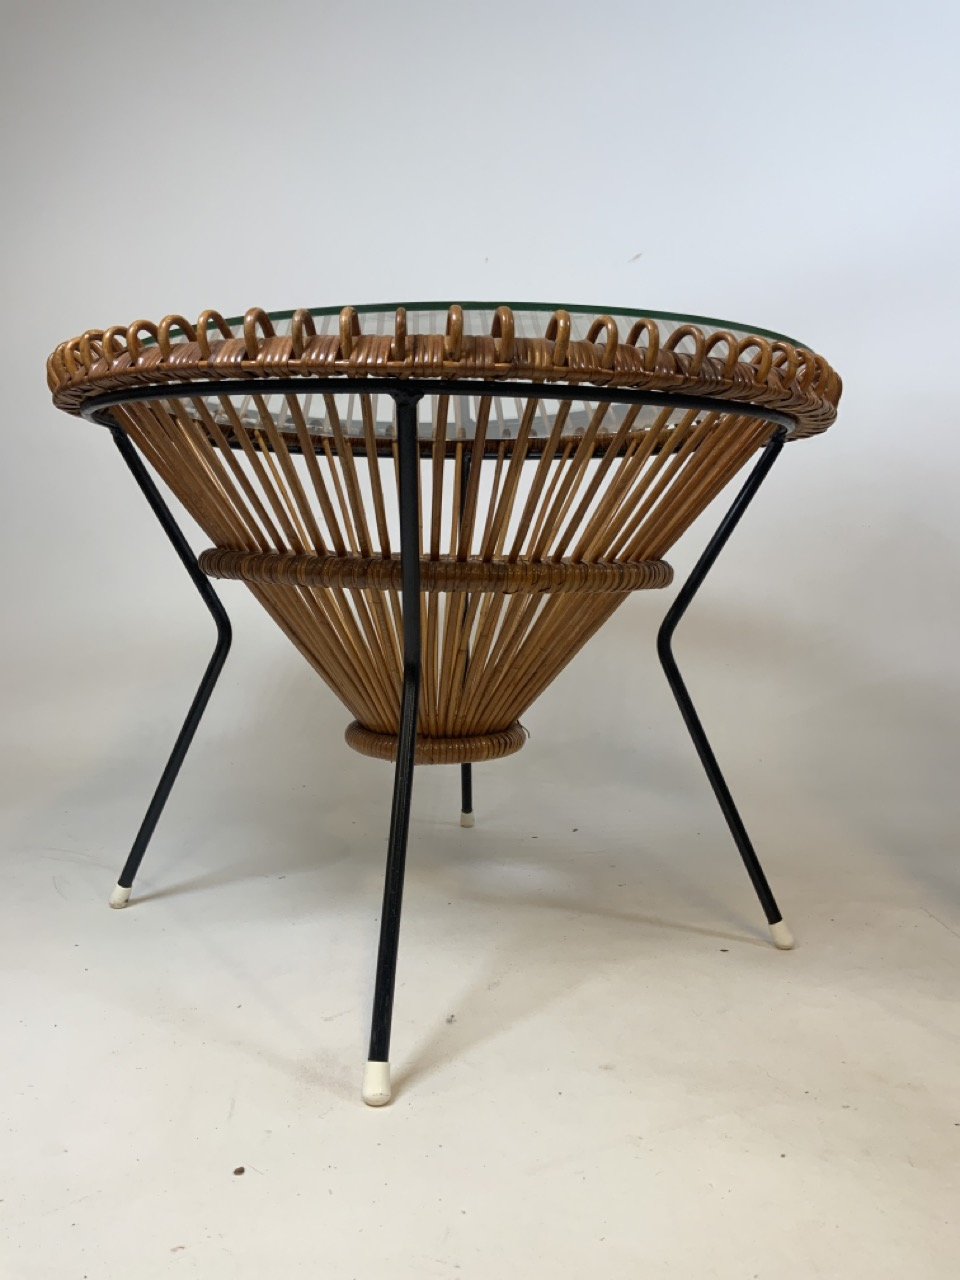 A Franco Albini mid century circular coffee table in wicker and metal with glass top and two - Image 6 of 7